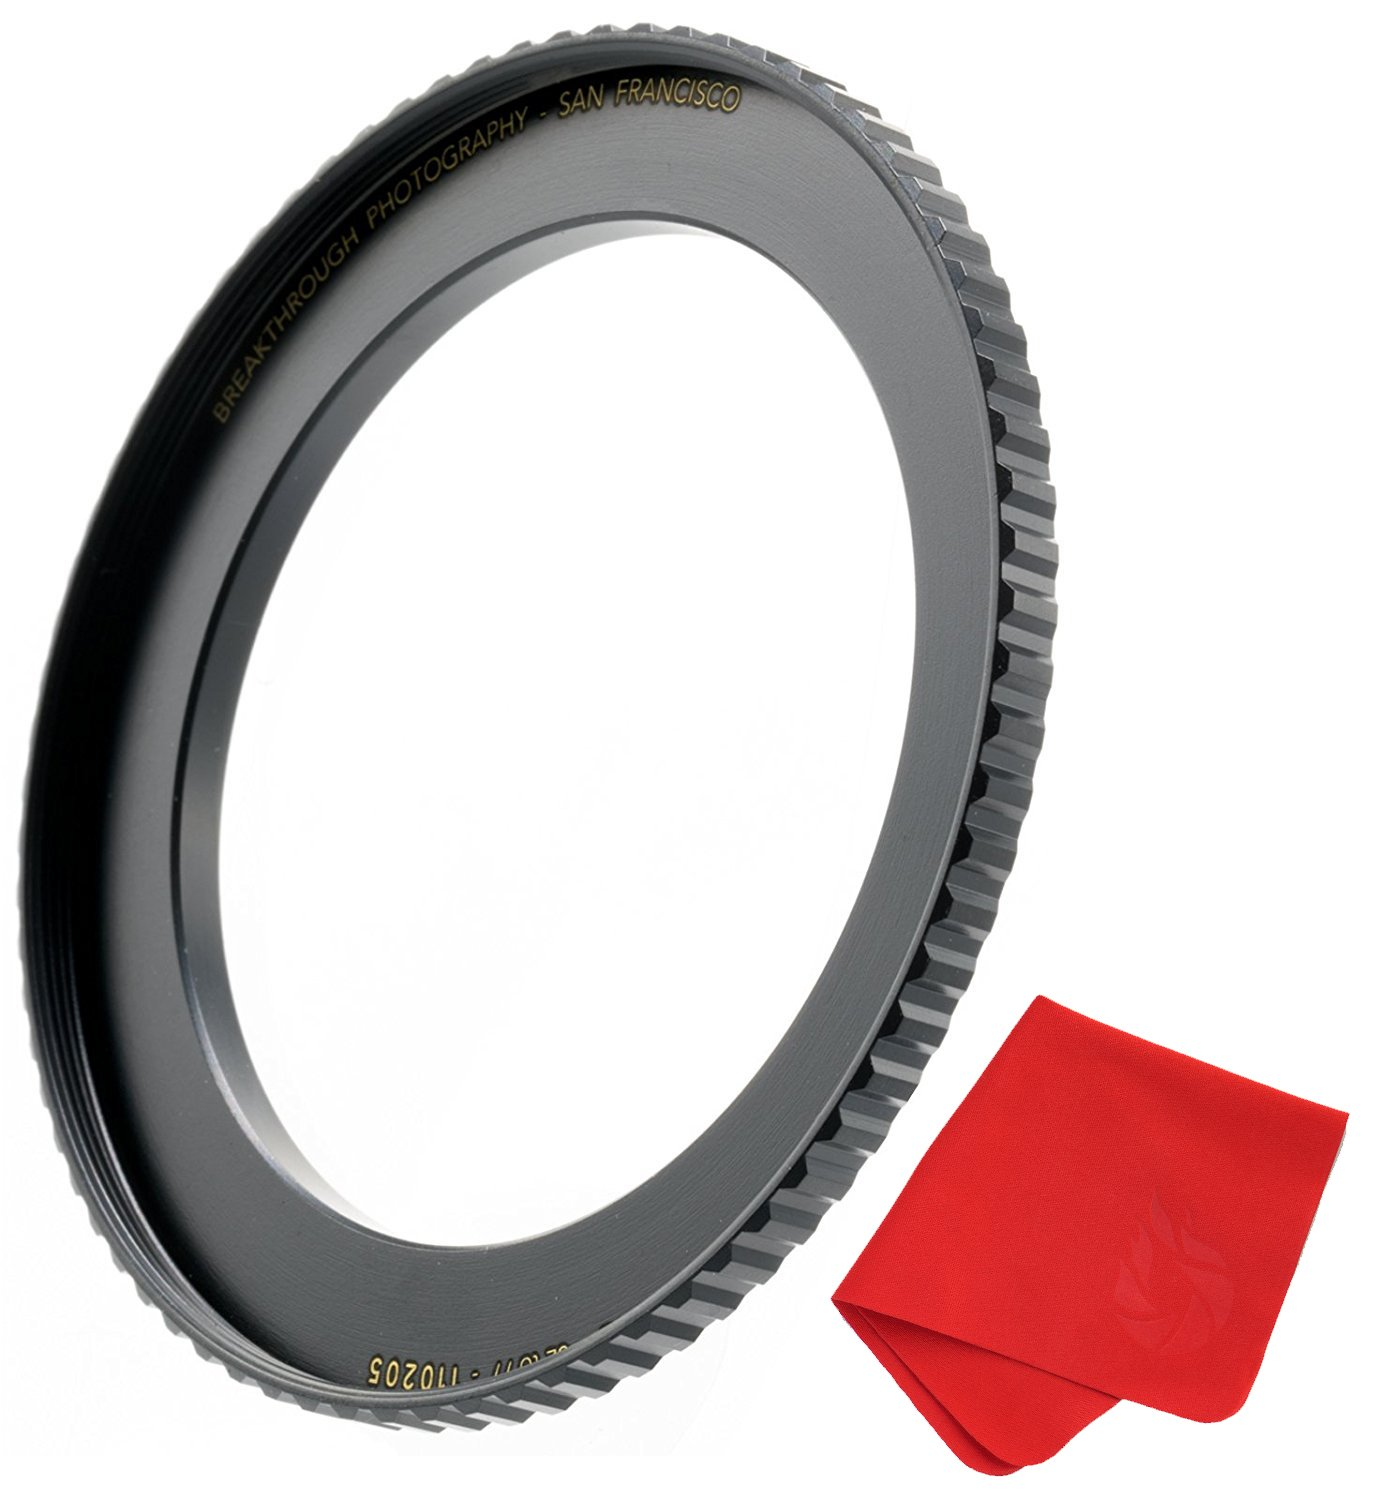 Breakthrough Photography 72mm to 82mm Step-Up Lens Adapter Ring for Filters, Made of CNC Machined Brass with Matte Black Electroplated Finish by Breakthrough Photography